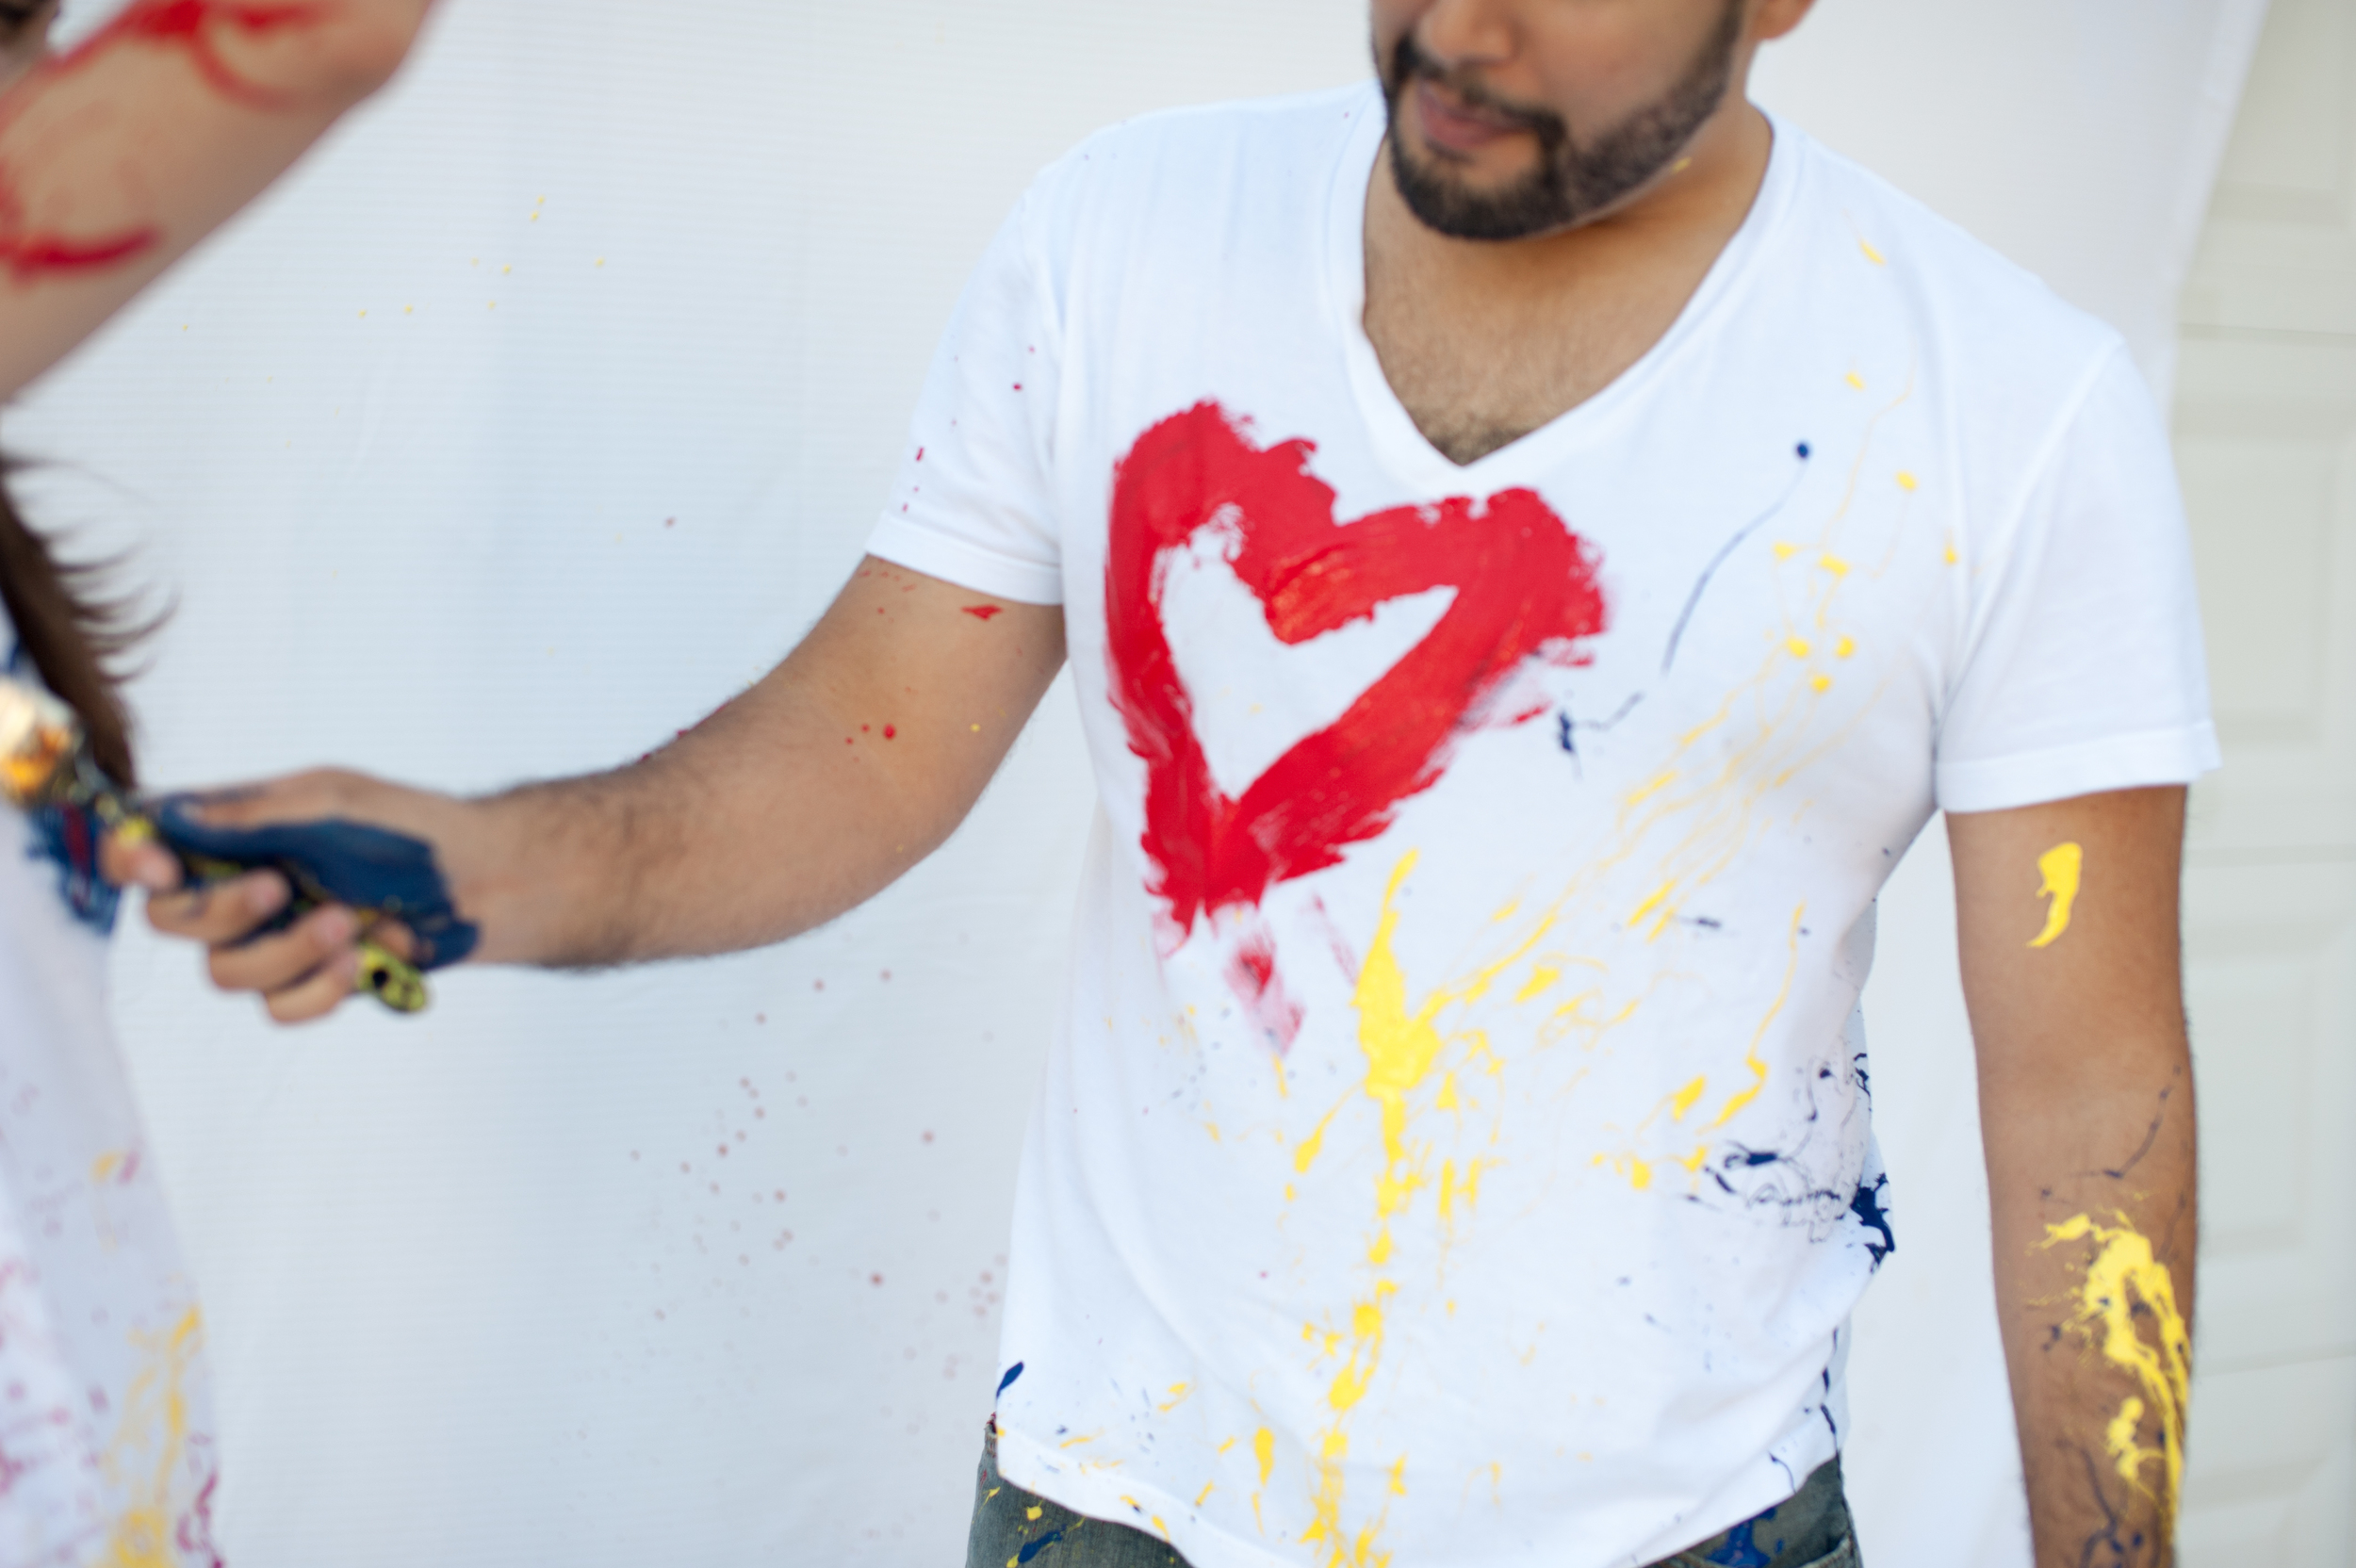 Paint War Engagement Session by Mantas Kubilinskas-3.jpg